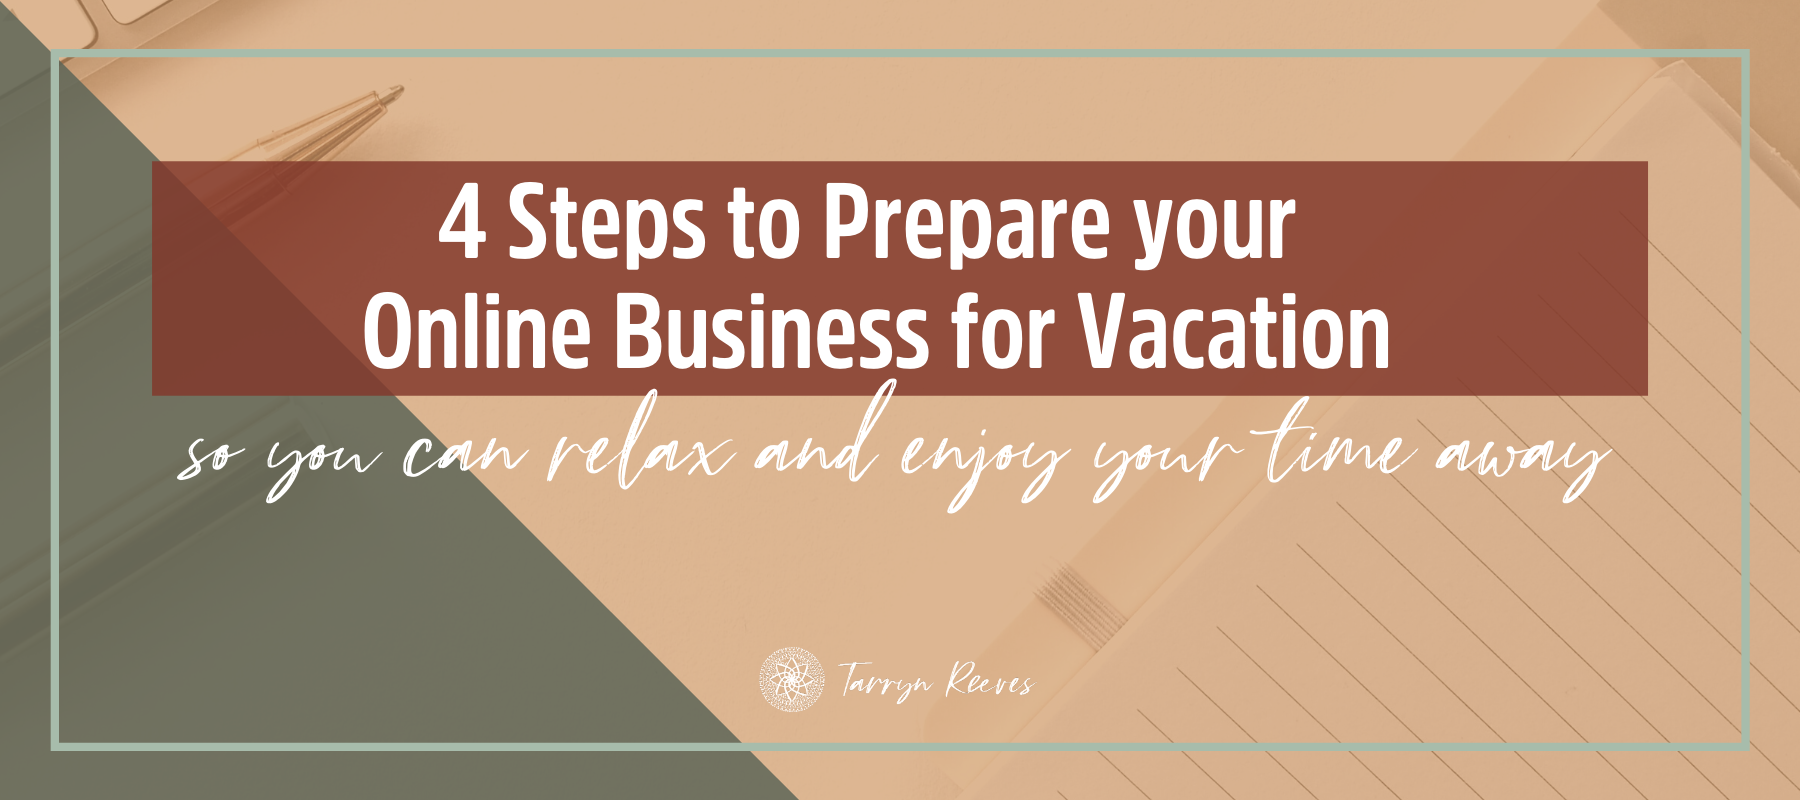 4 Steps To Prepare Your Online Business For Vacation